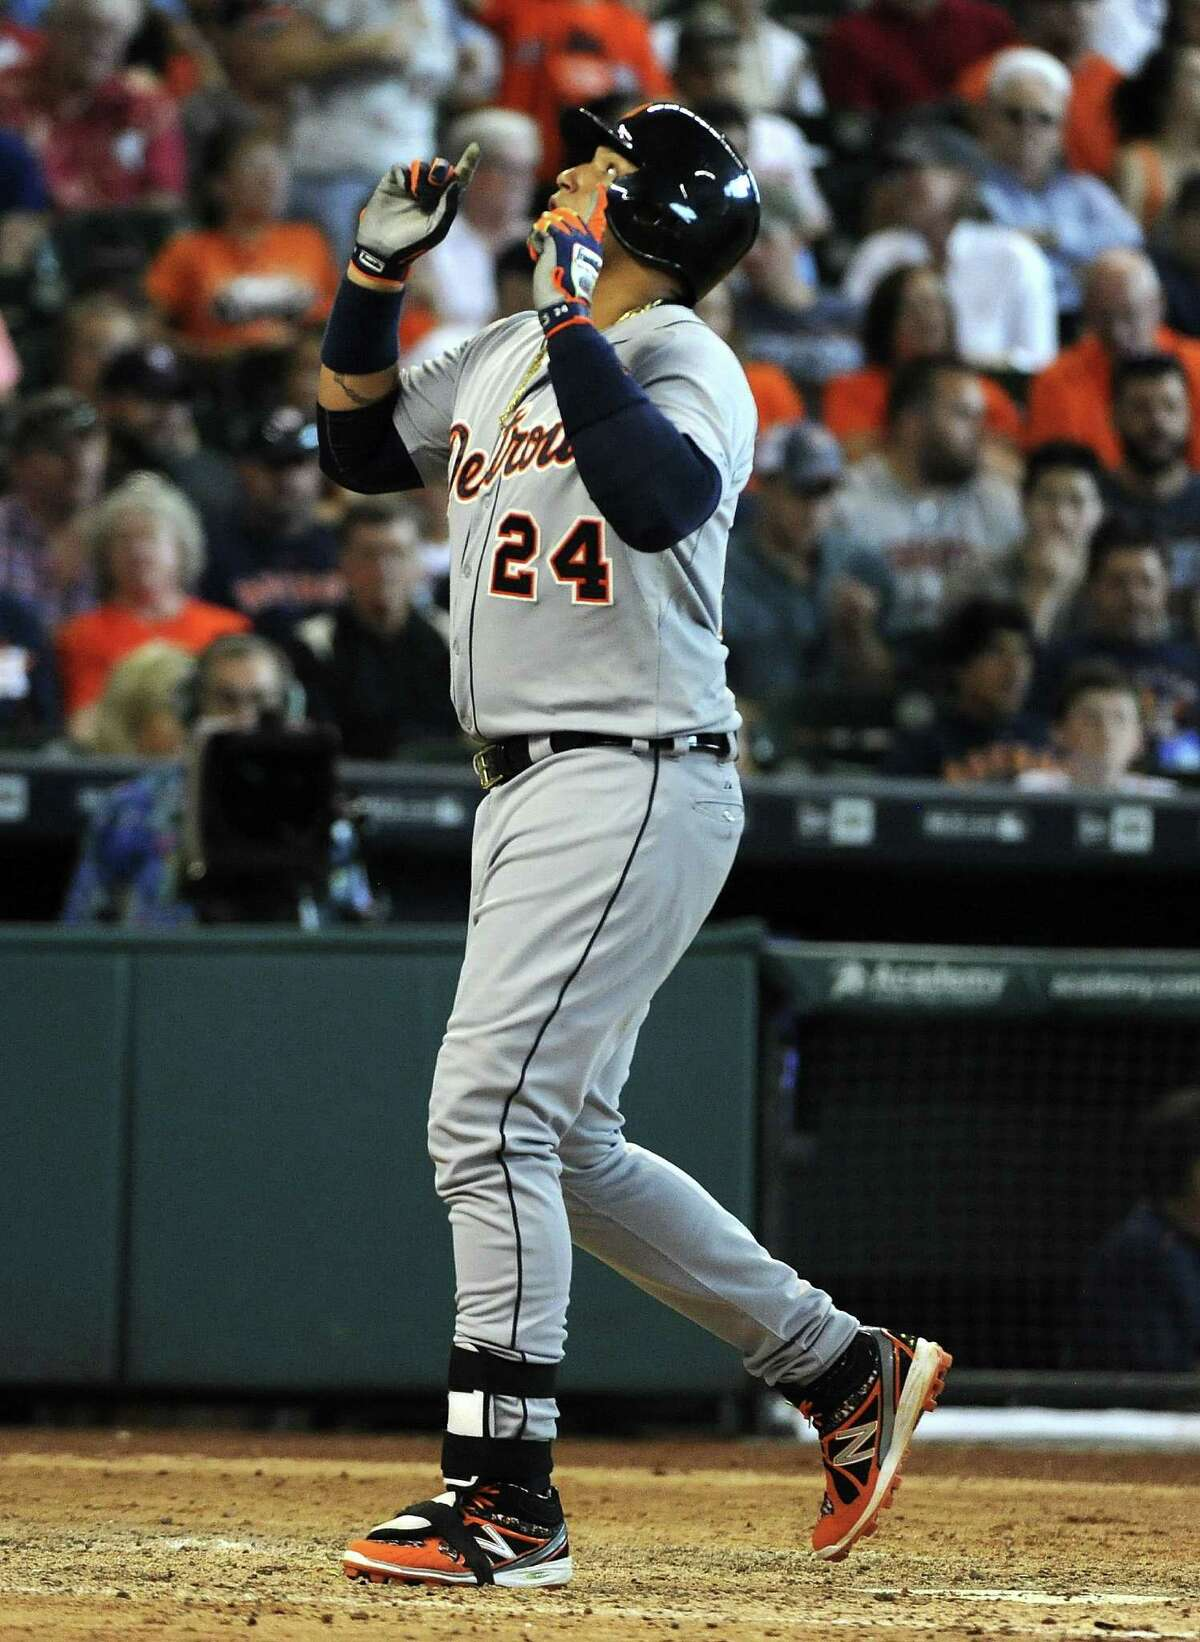 Detroit Tigers' Miguel Cabrera (24) celebrates his two-run home run in the seventh inning of a baseball game against the Houston Astros, Sunday, Aug. 16, 2015, in Houston. (AP Photo/Eric Christian Smith)